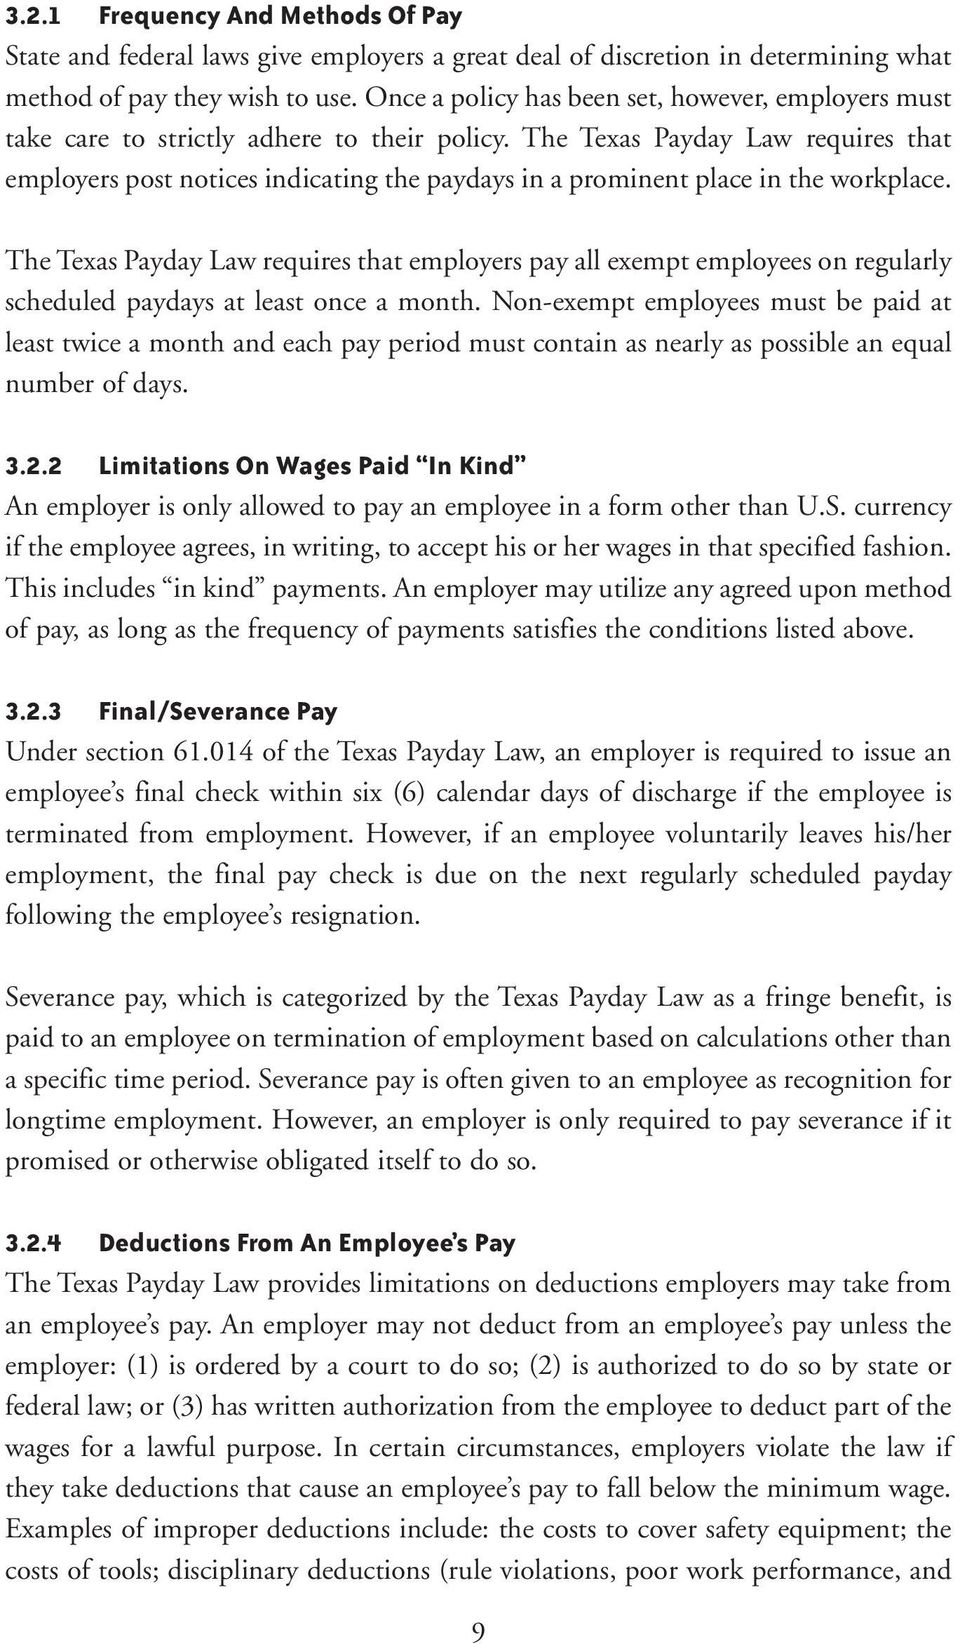 The Texas Payday Law requires that employers post notices indicating the paydays in a prominent place in the workplace.